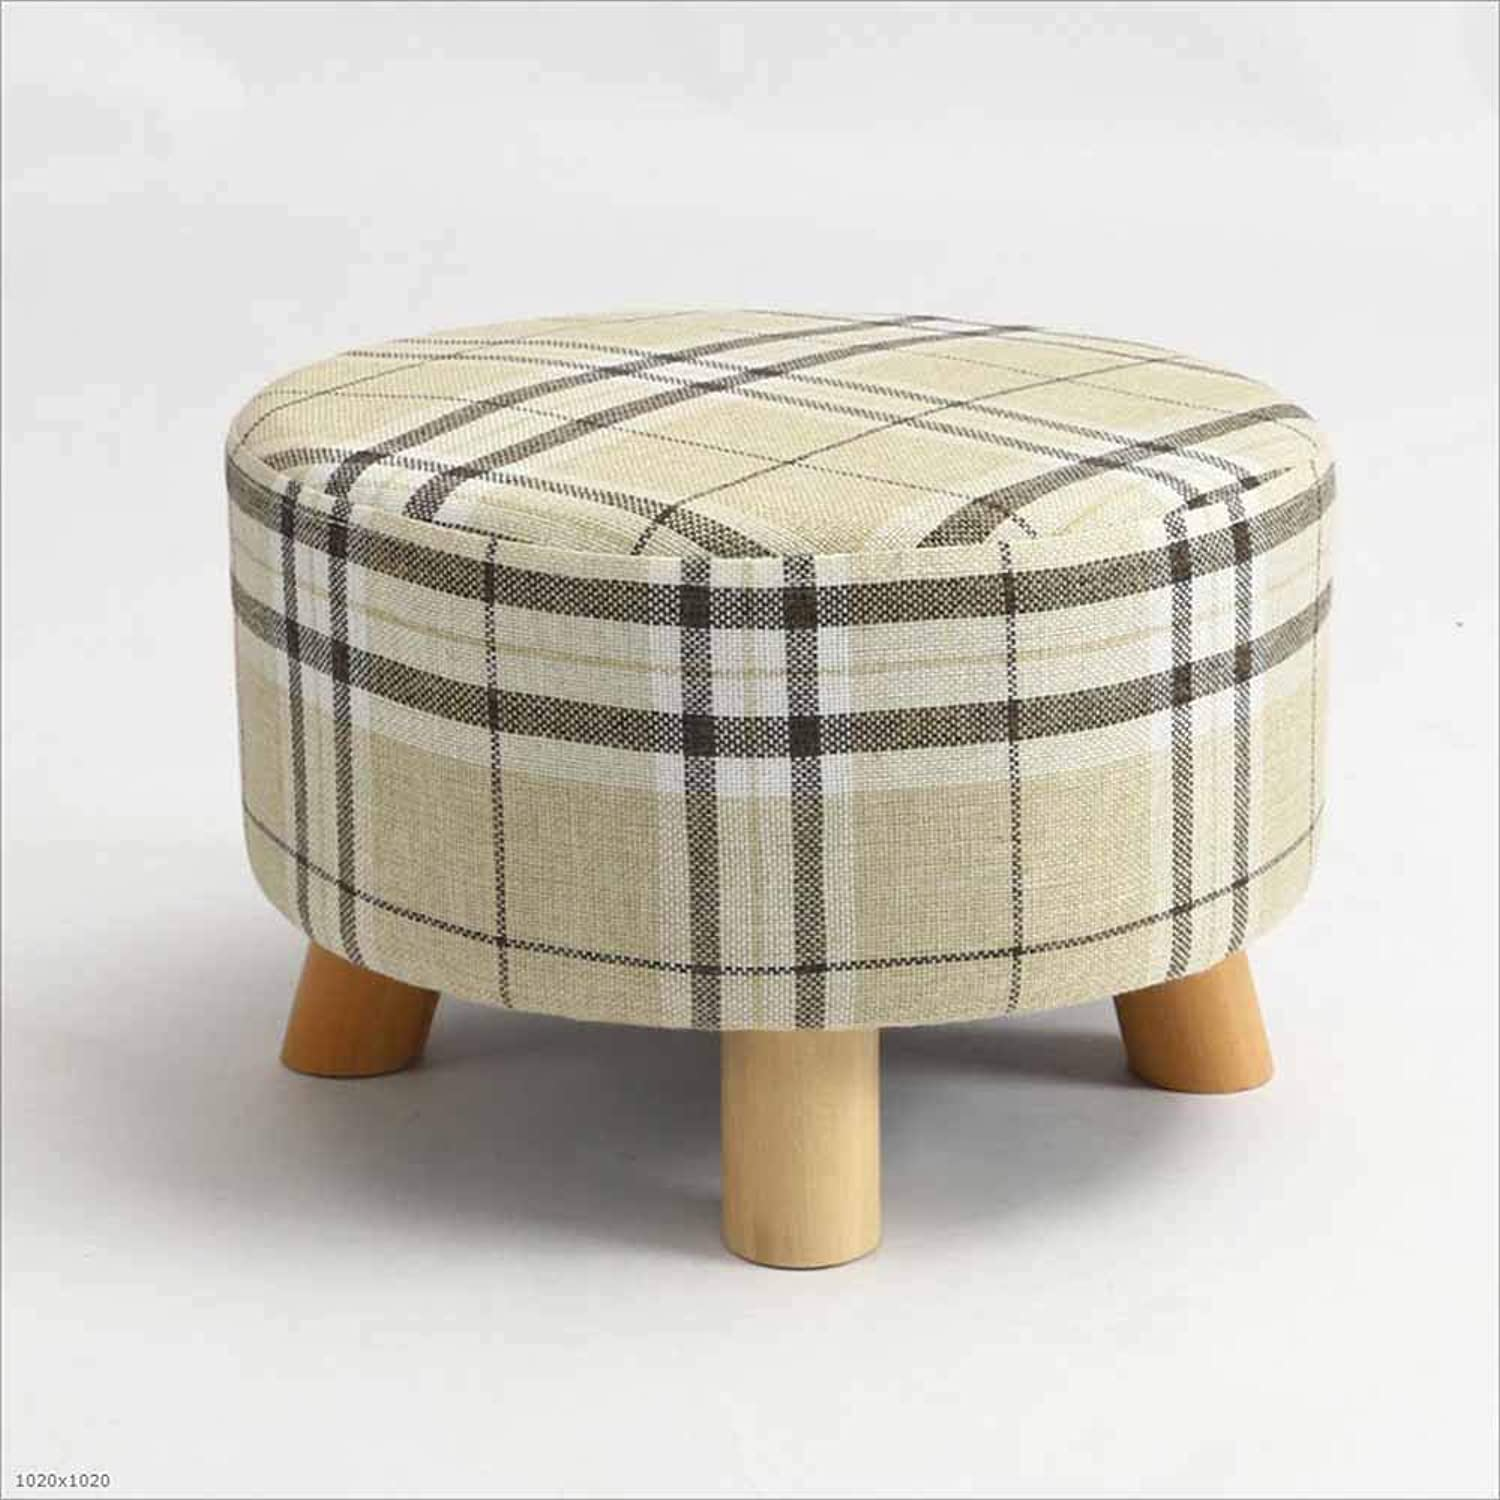 Sofa Stool Solid Wood Stool Fabric Washable Coffee Table Stool Small Stool Suitable for Living Room Bedroom, 5